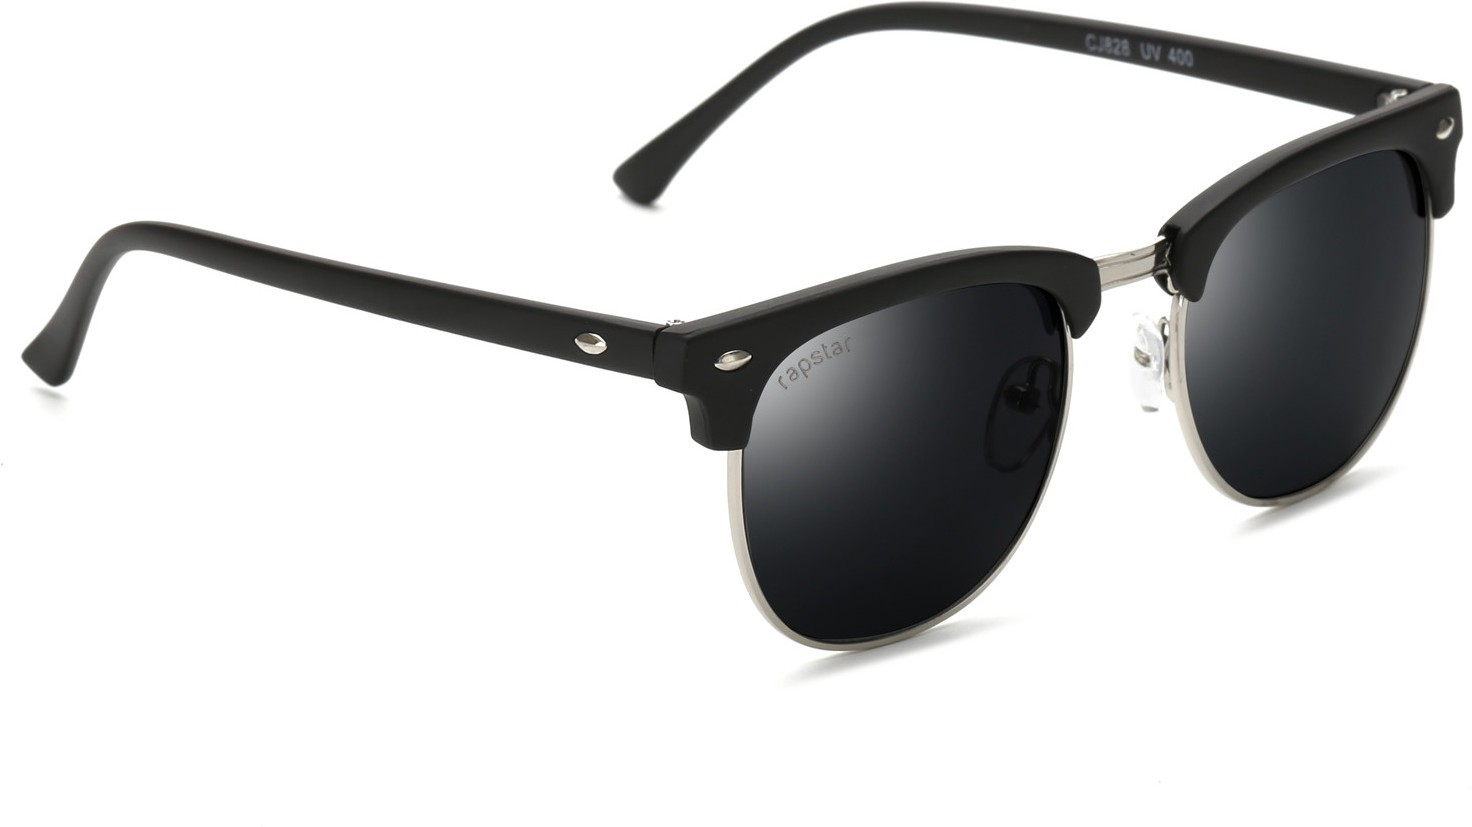 Deals - Delhi - Joe Black & more <br> Sunglasses<br> Category - sunglasses<br> Business - Flipkart.com